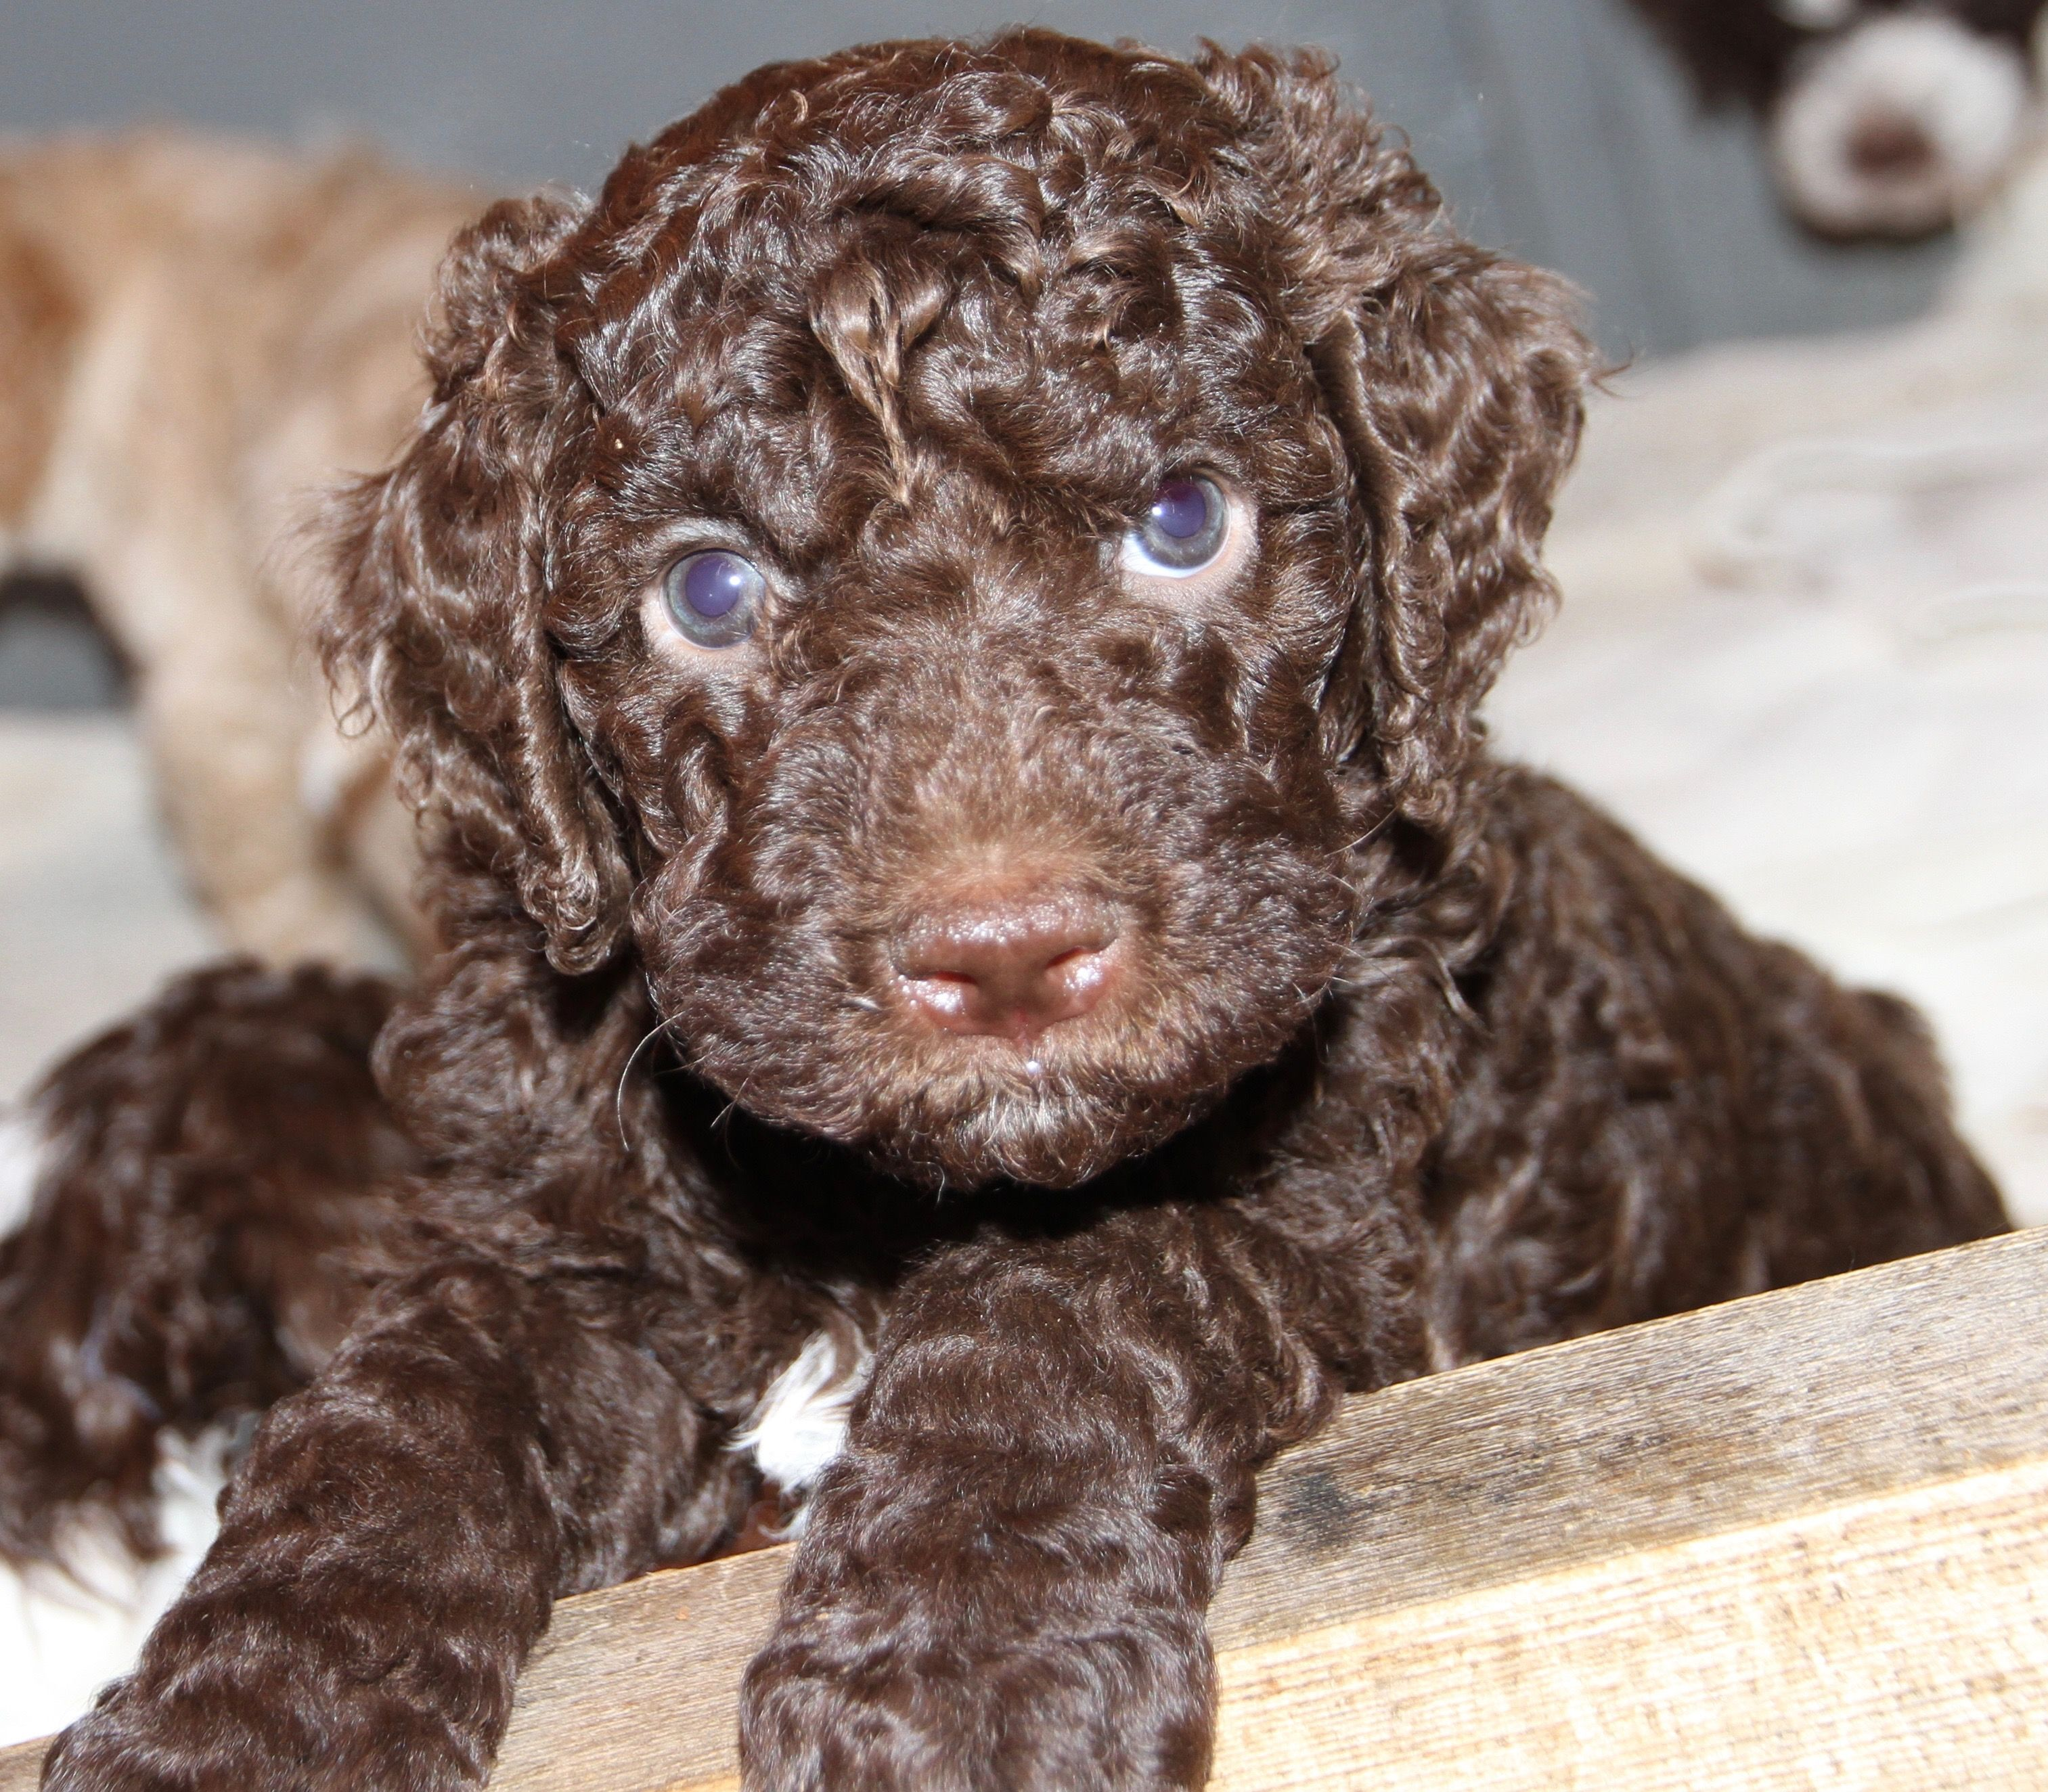 Please Contact Lagottodistinguished Gmail Com For Your Puppy Application Dog Breeder Lagotto Romagnolo Puppy Dogs